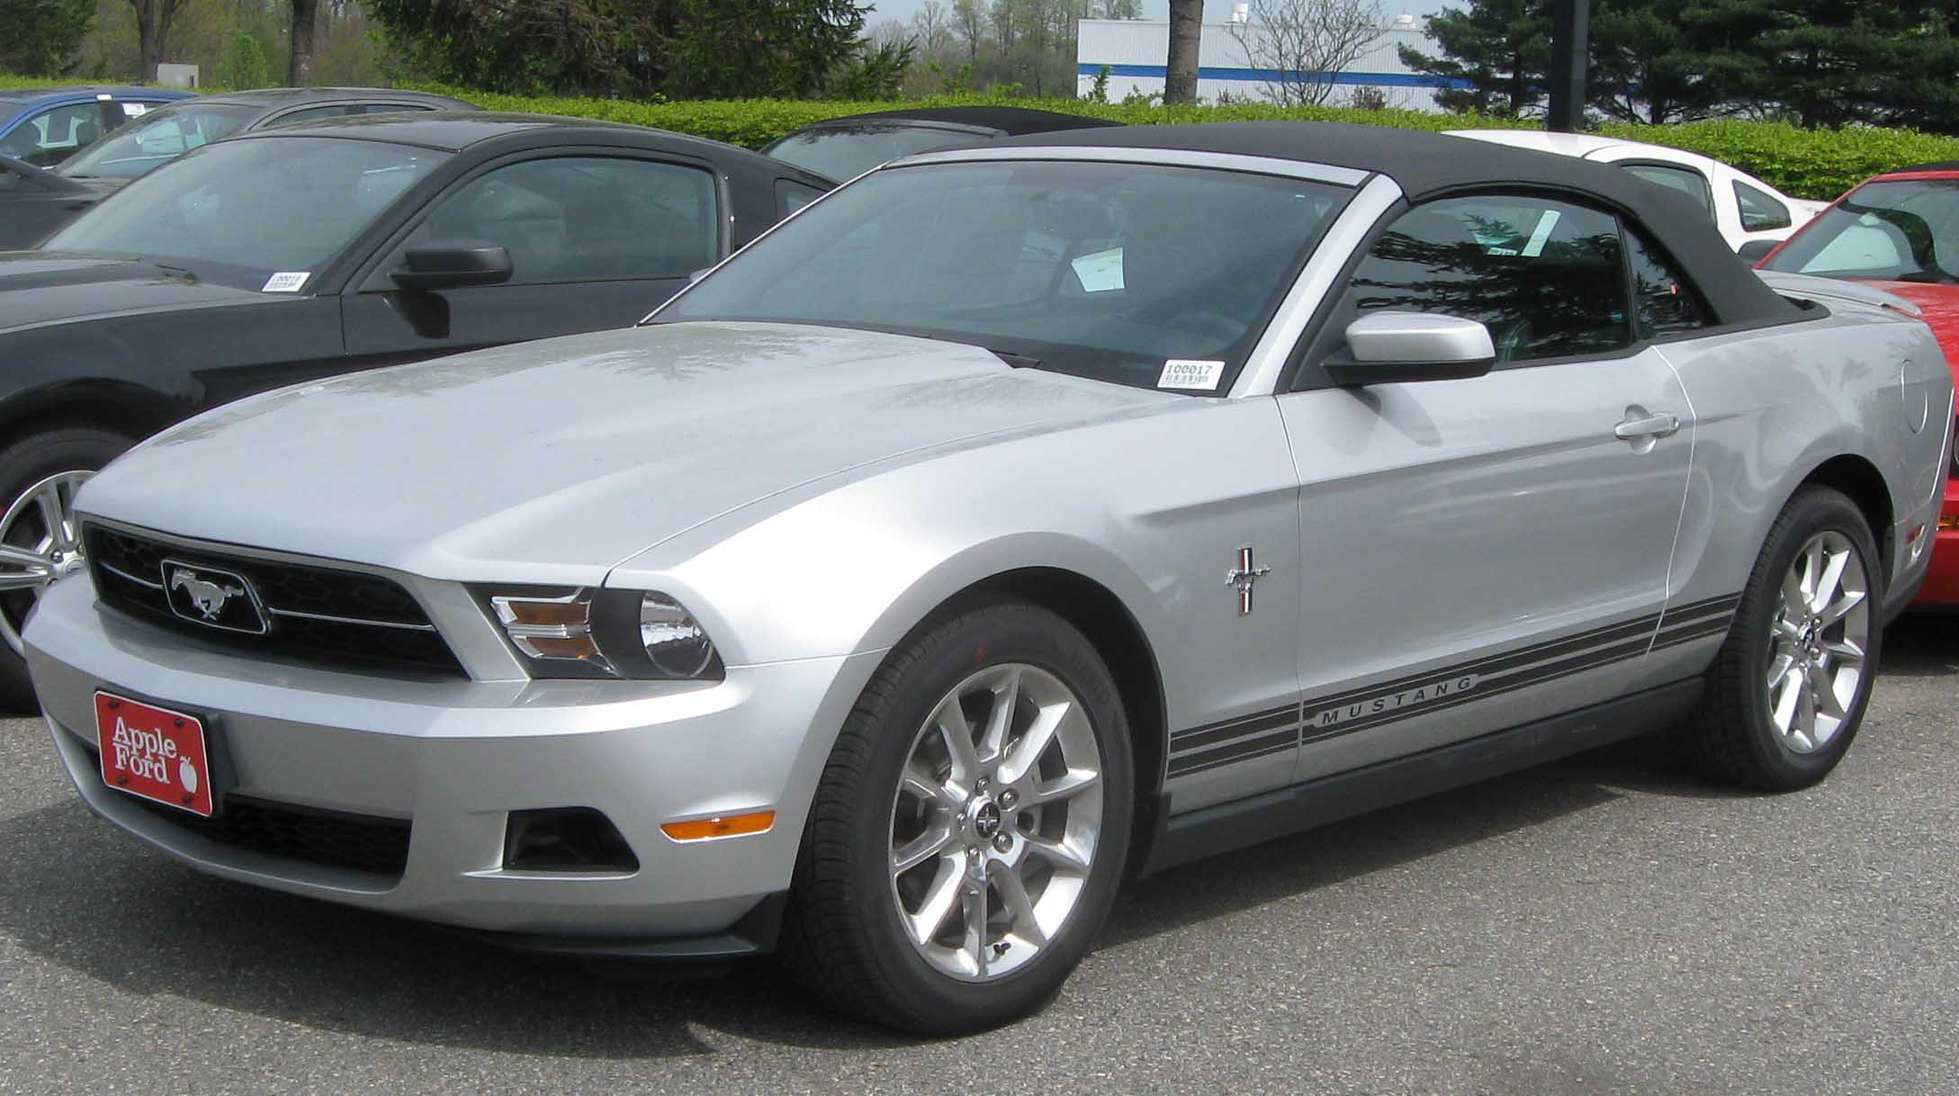 Ford Mustang Cabrio #7453636